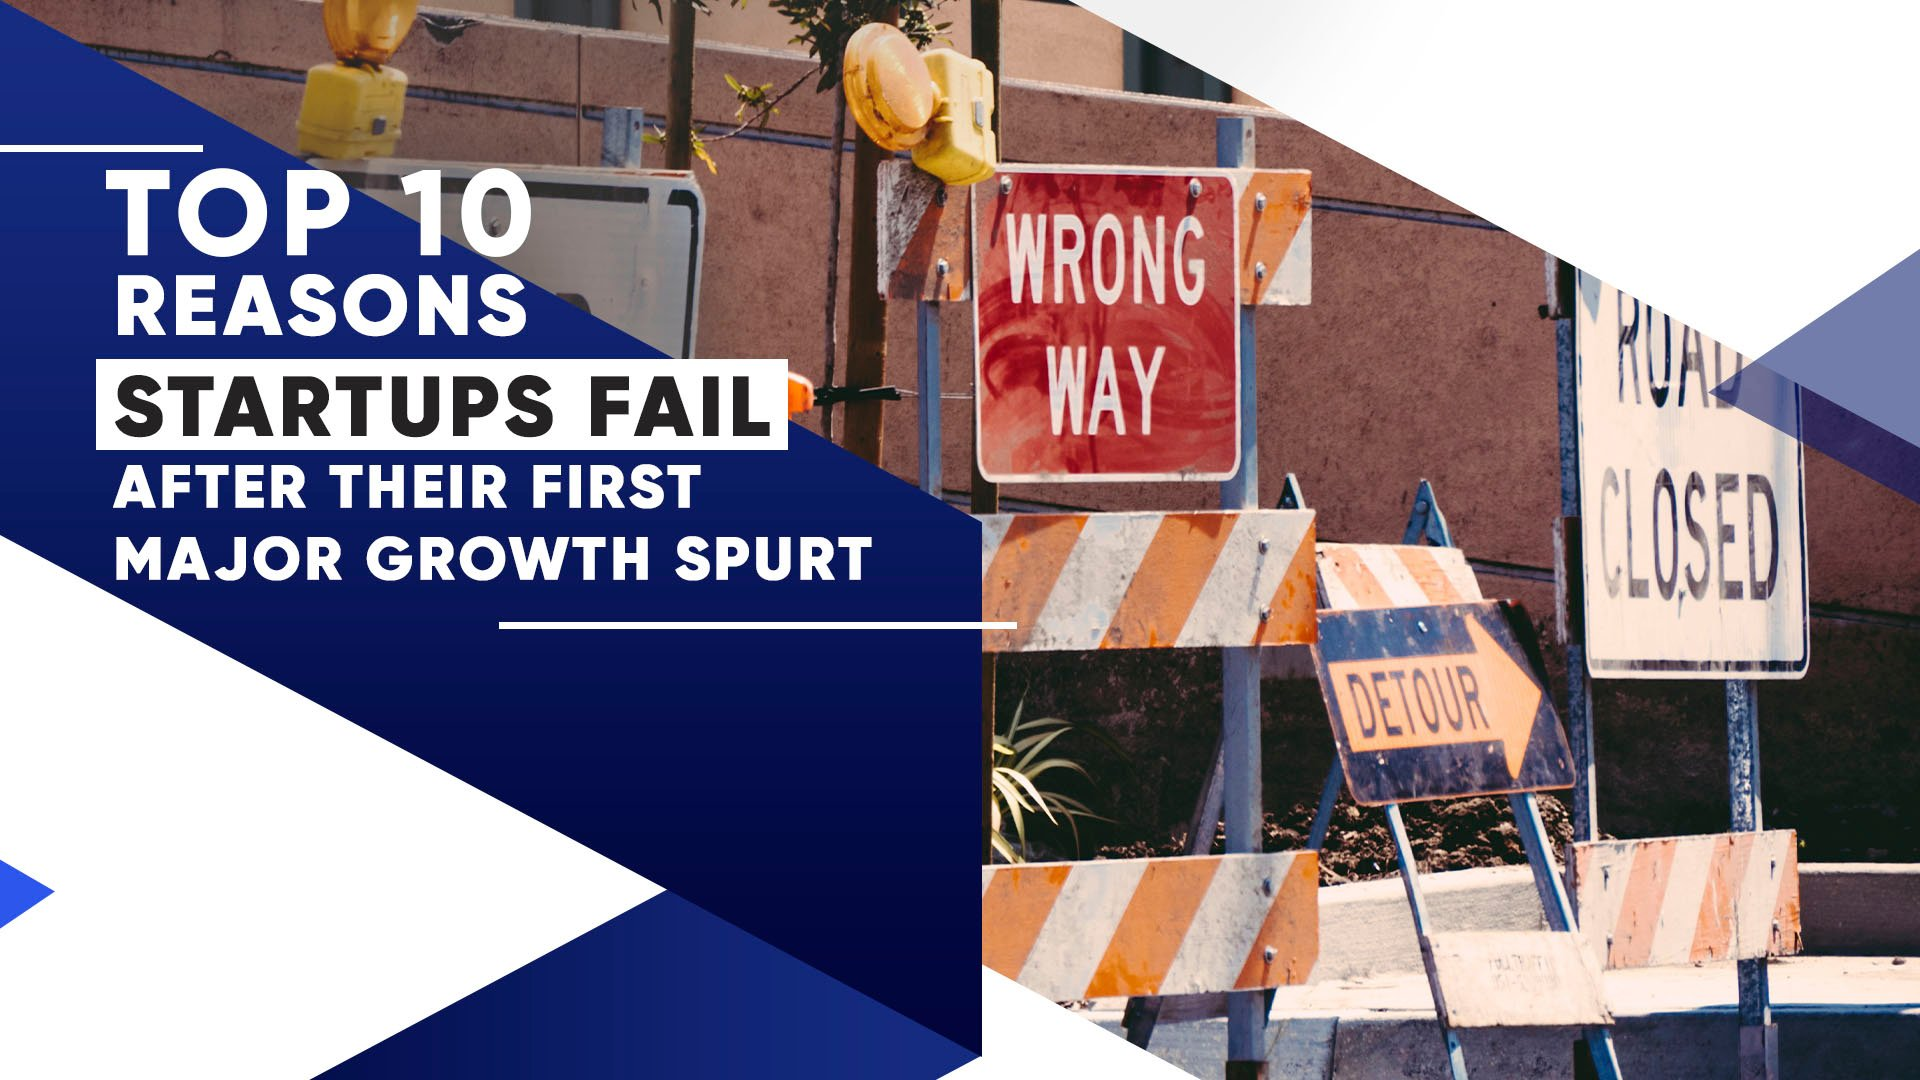 Top 10 Reasons Startups Fail After Their First Growth Spurt